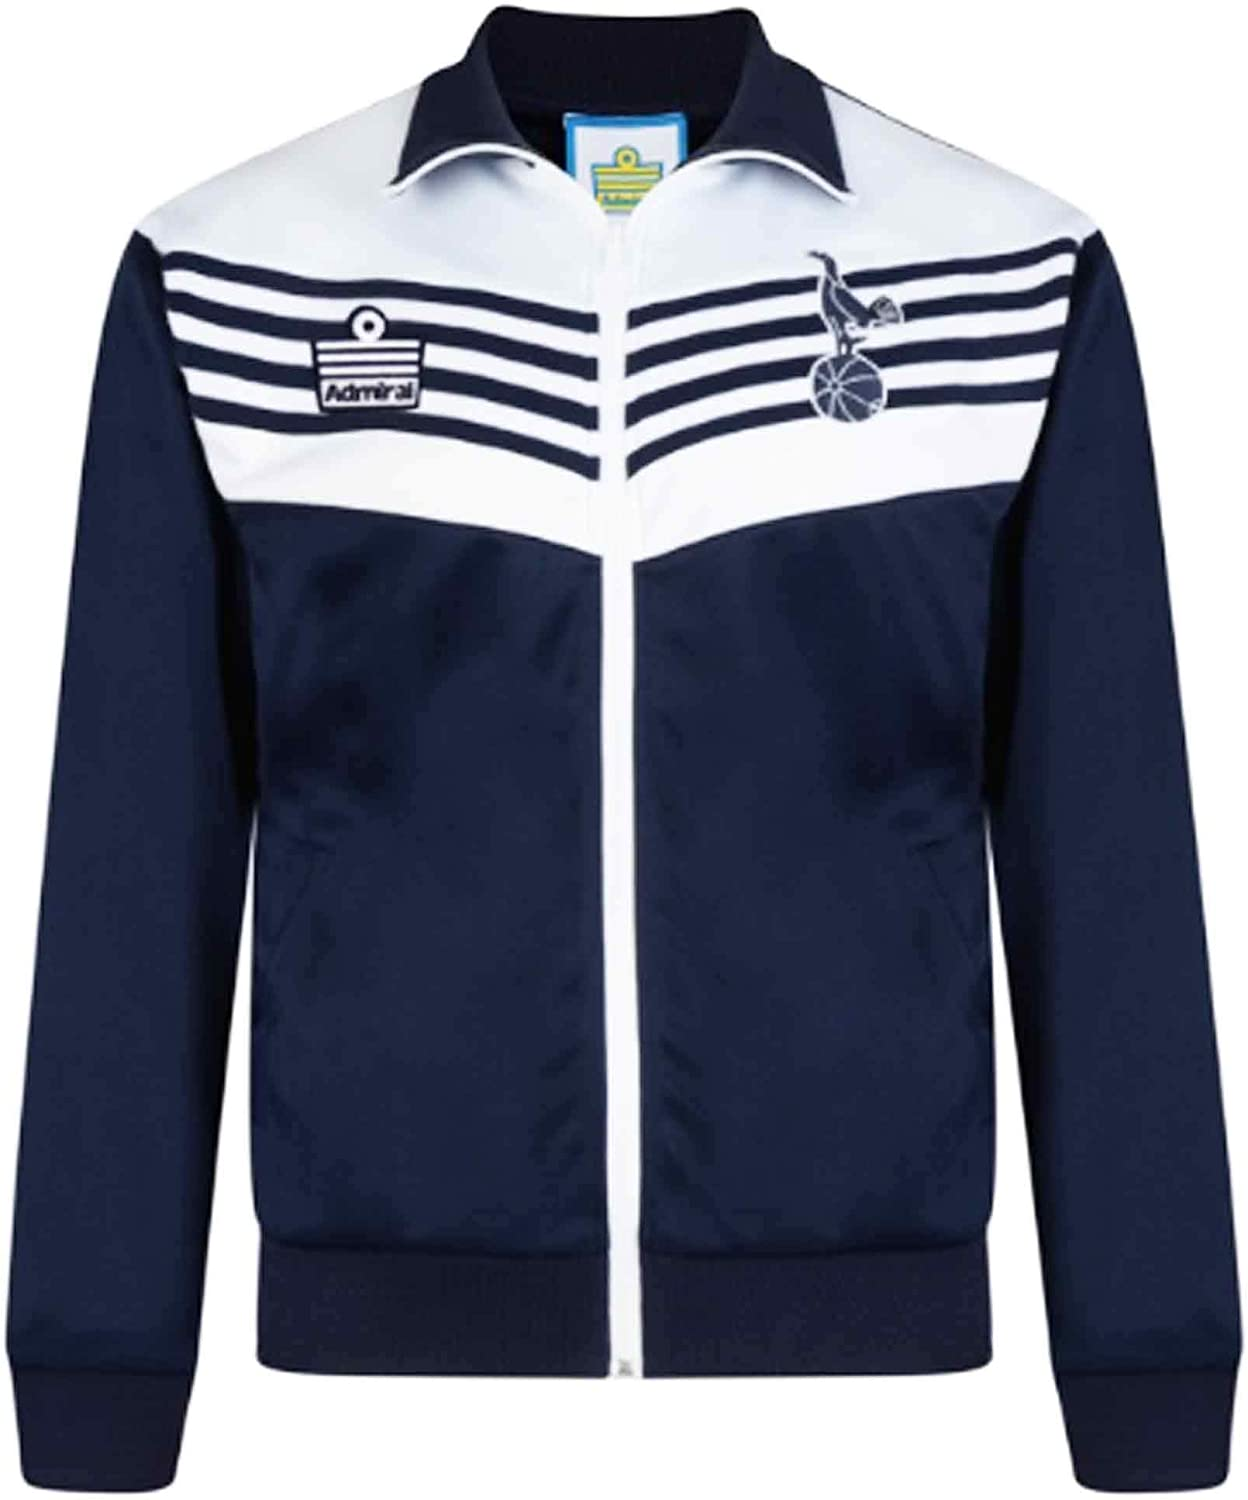 THFC Official Tottenham Football Crest 1970s Classic Retro Zipped Jacket 100/% Polyester